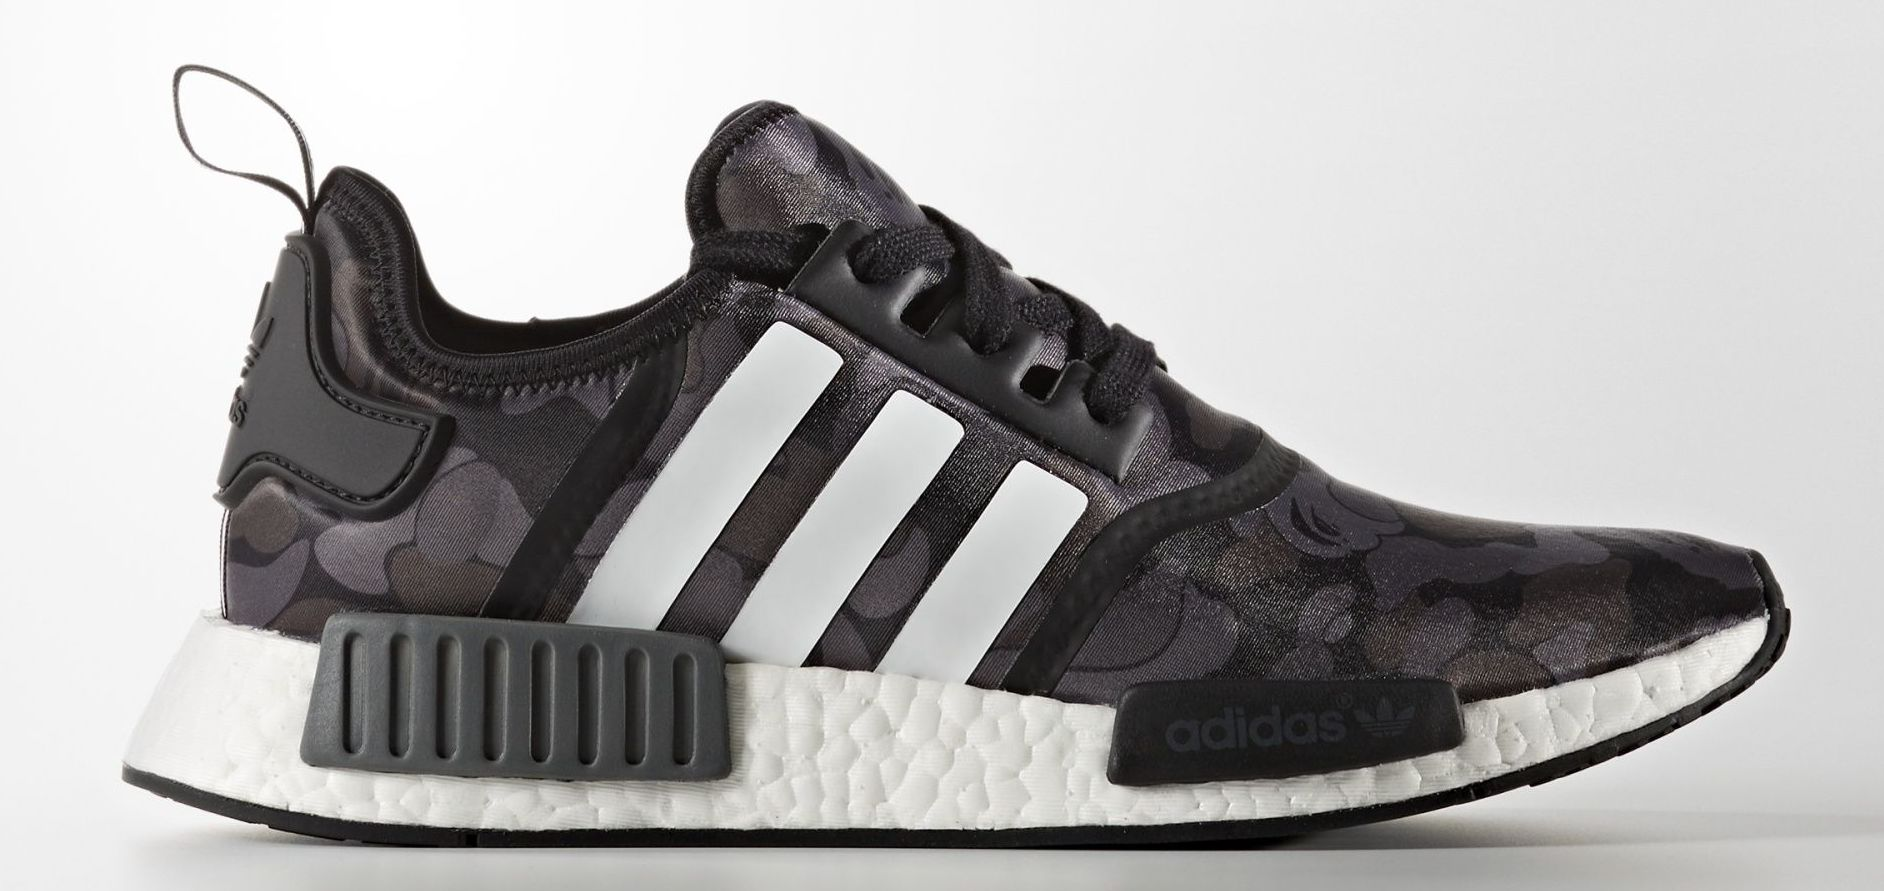 bape adidas nmd release date sole collector. Black Bedroom Furniture Sets. Home Design Ideas